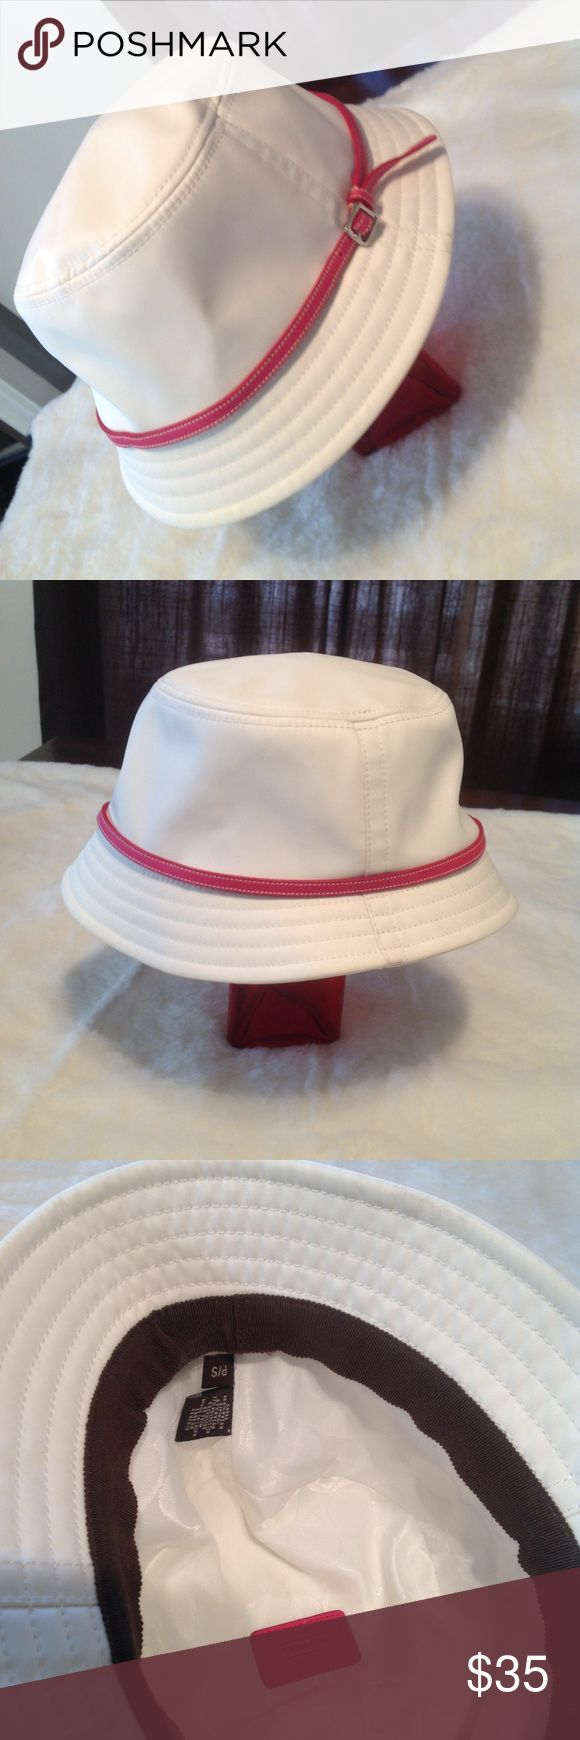 Coach Hat White with Pink Leather band Coach Hat White with Pink Leather band  Size P/S  EUC   🚫Trades Coach Accessories Hats